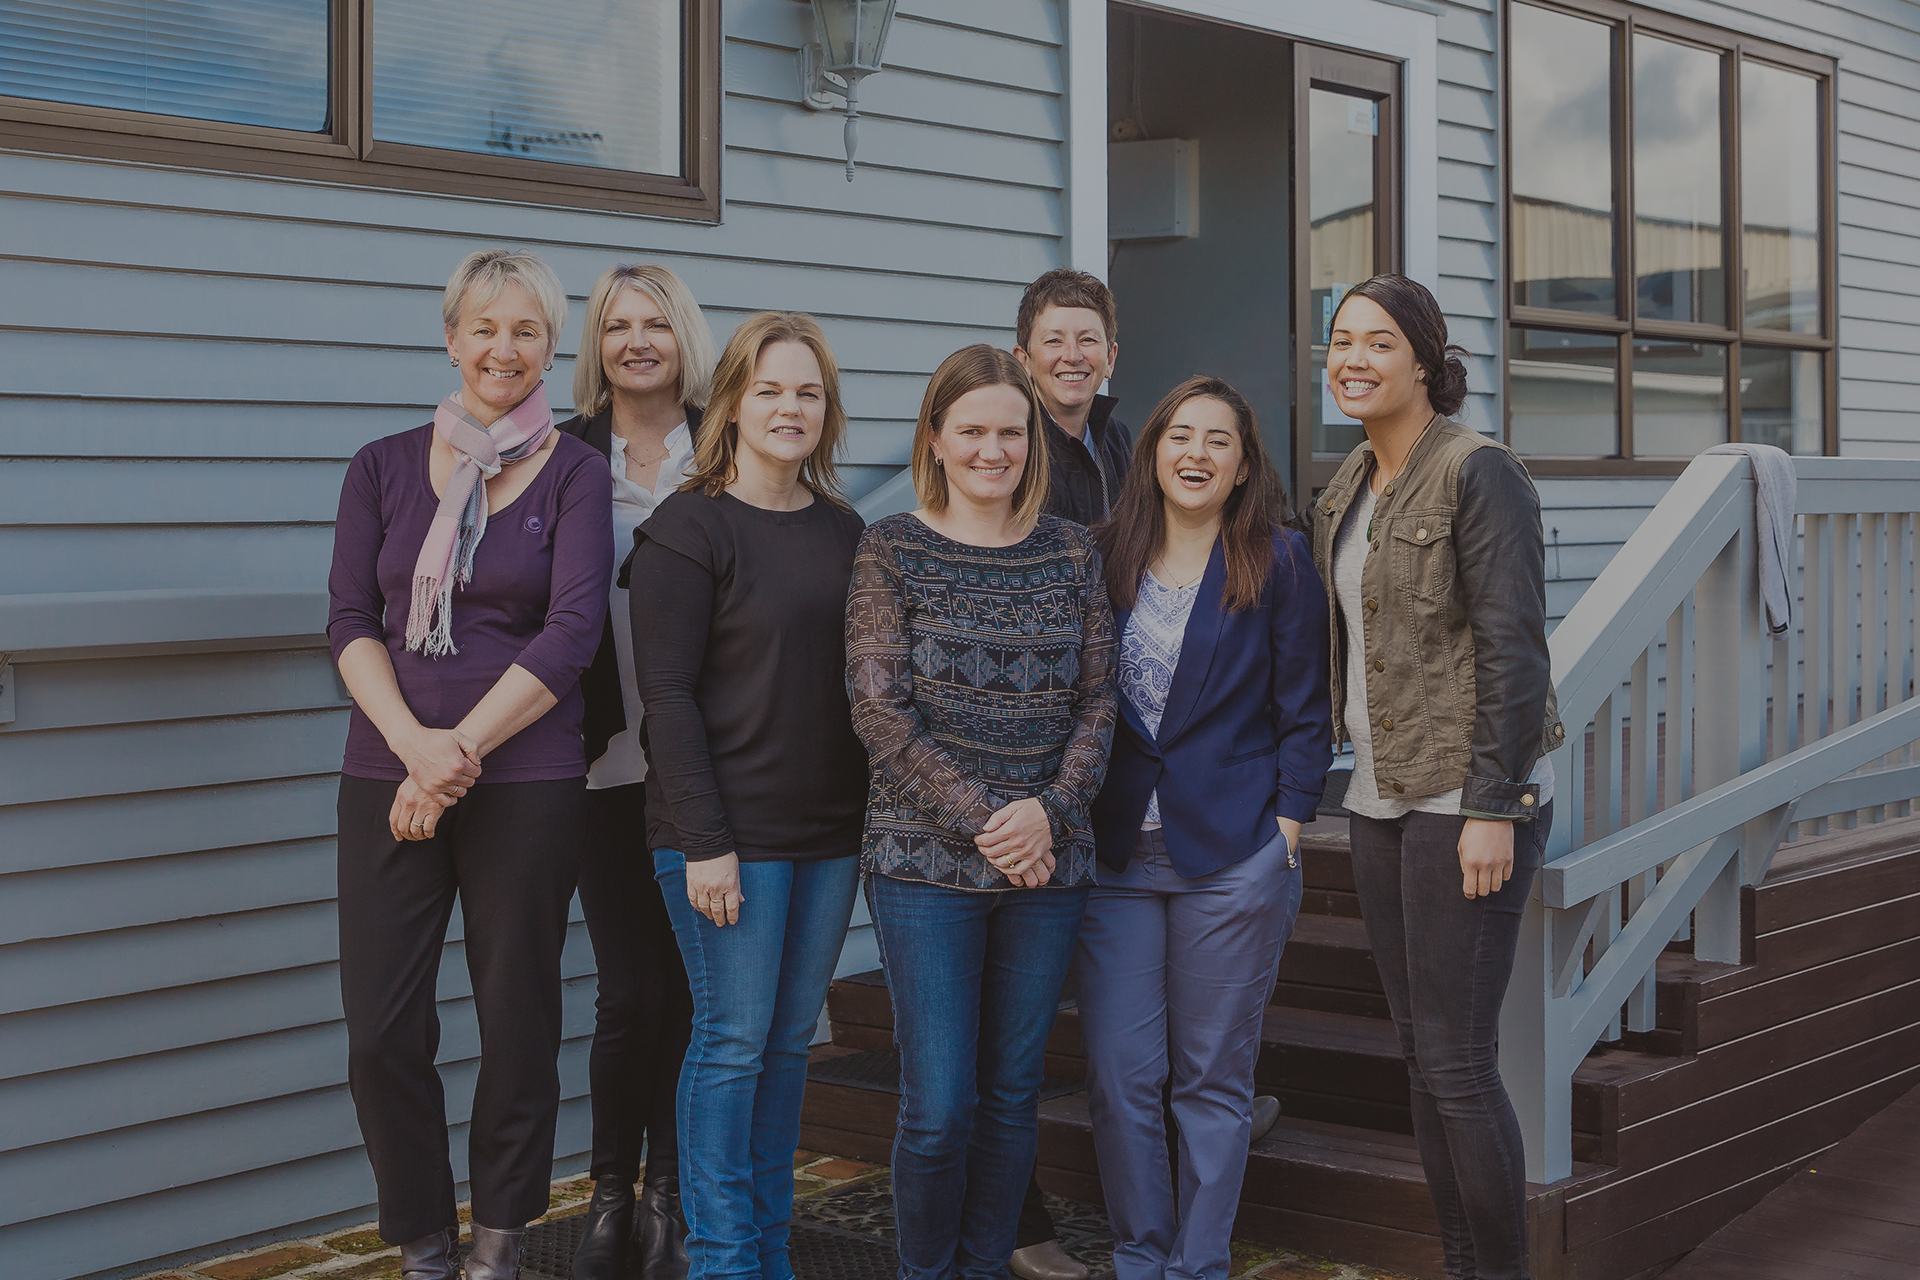 Dental Care Staff | Dental On Mahoe Te Awamutu